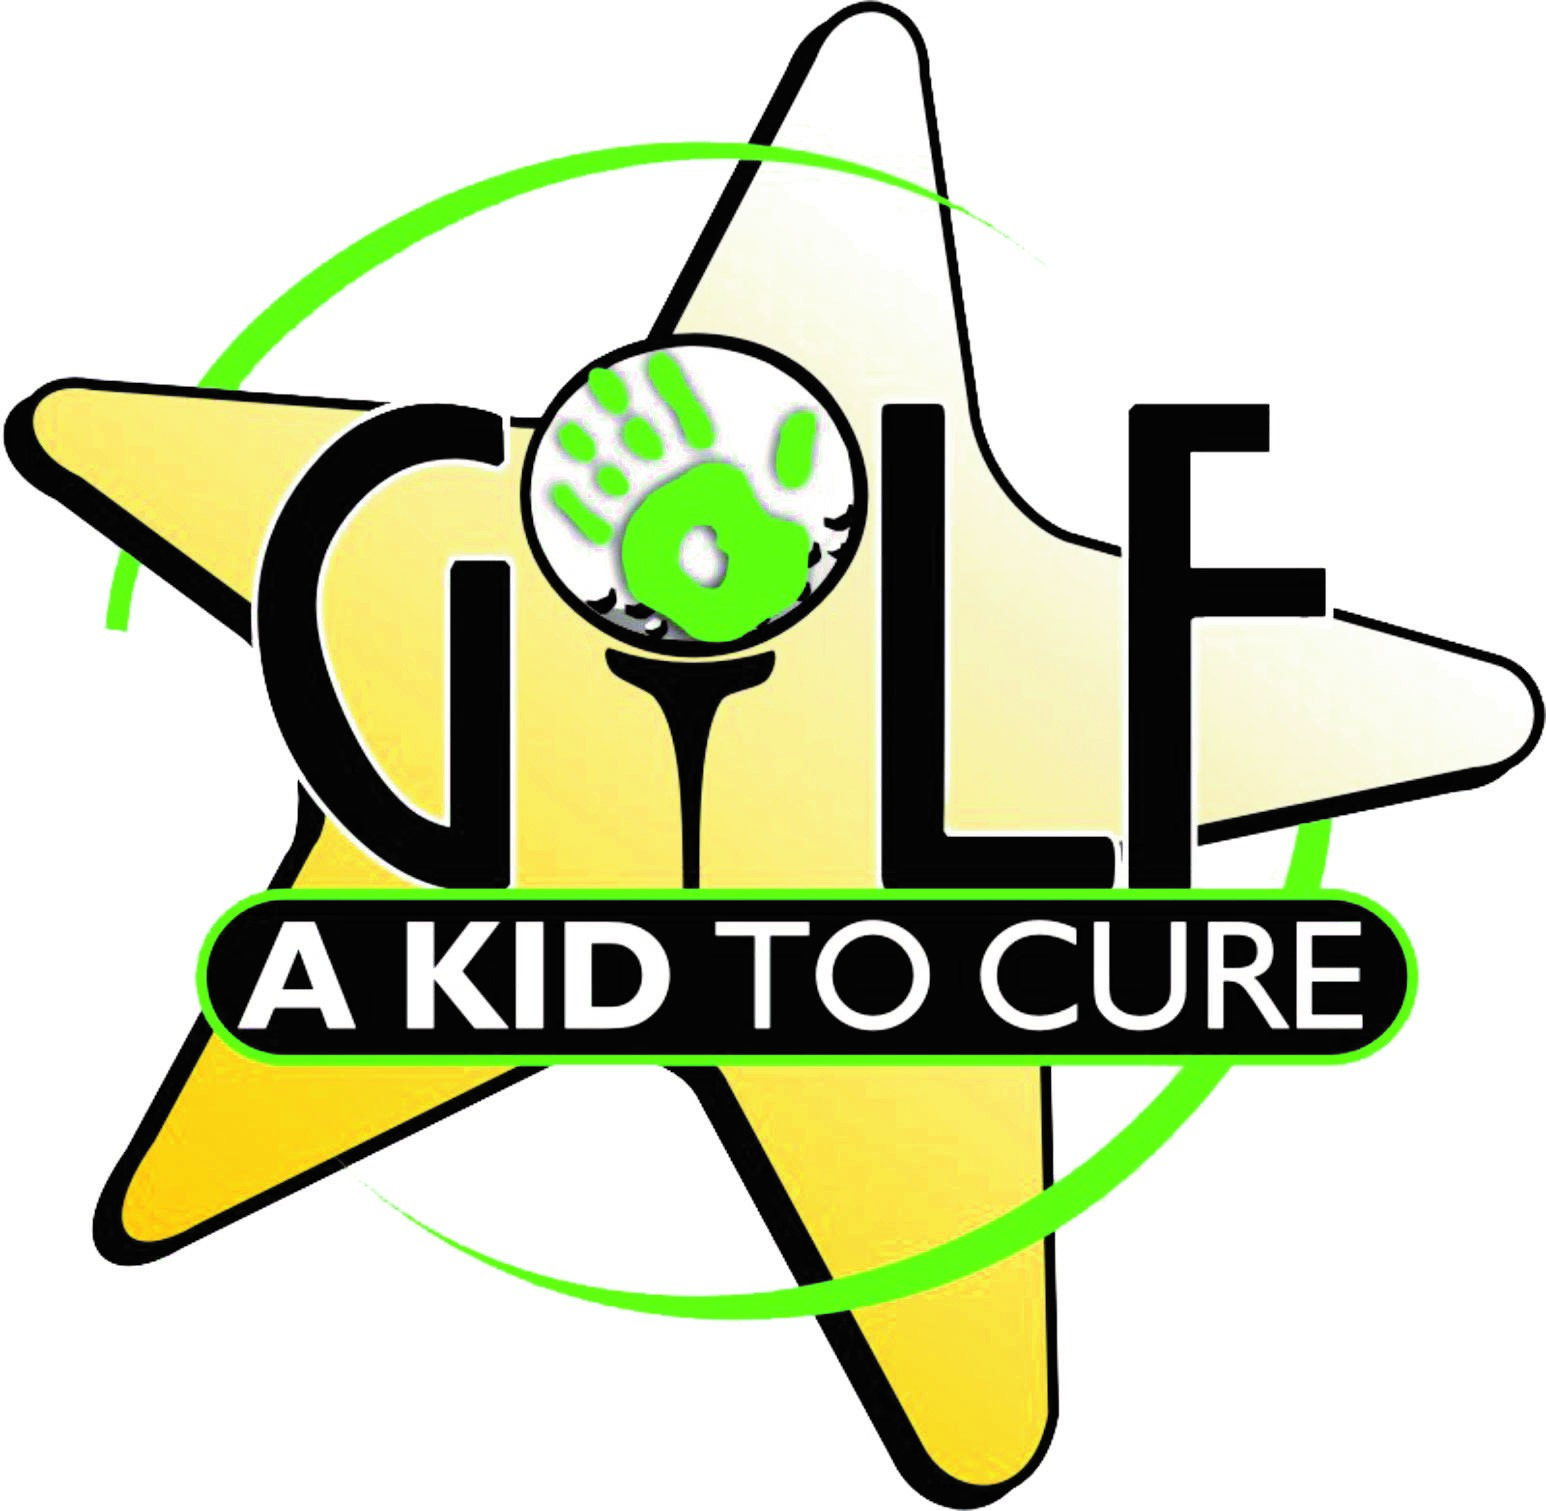 GOLF A KID TO CURE